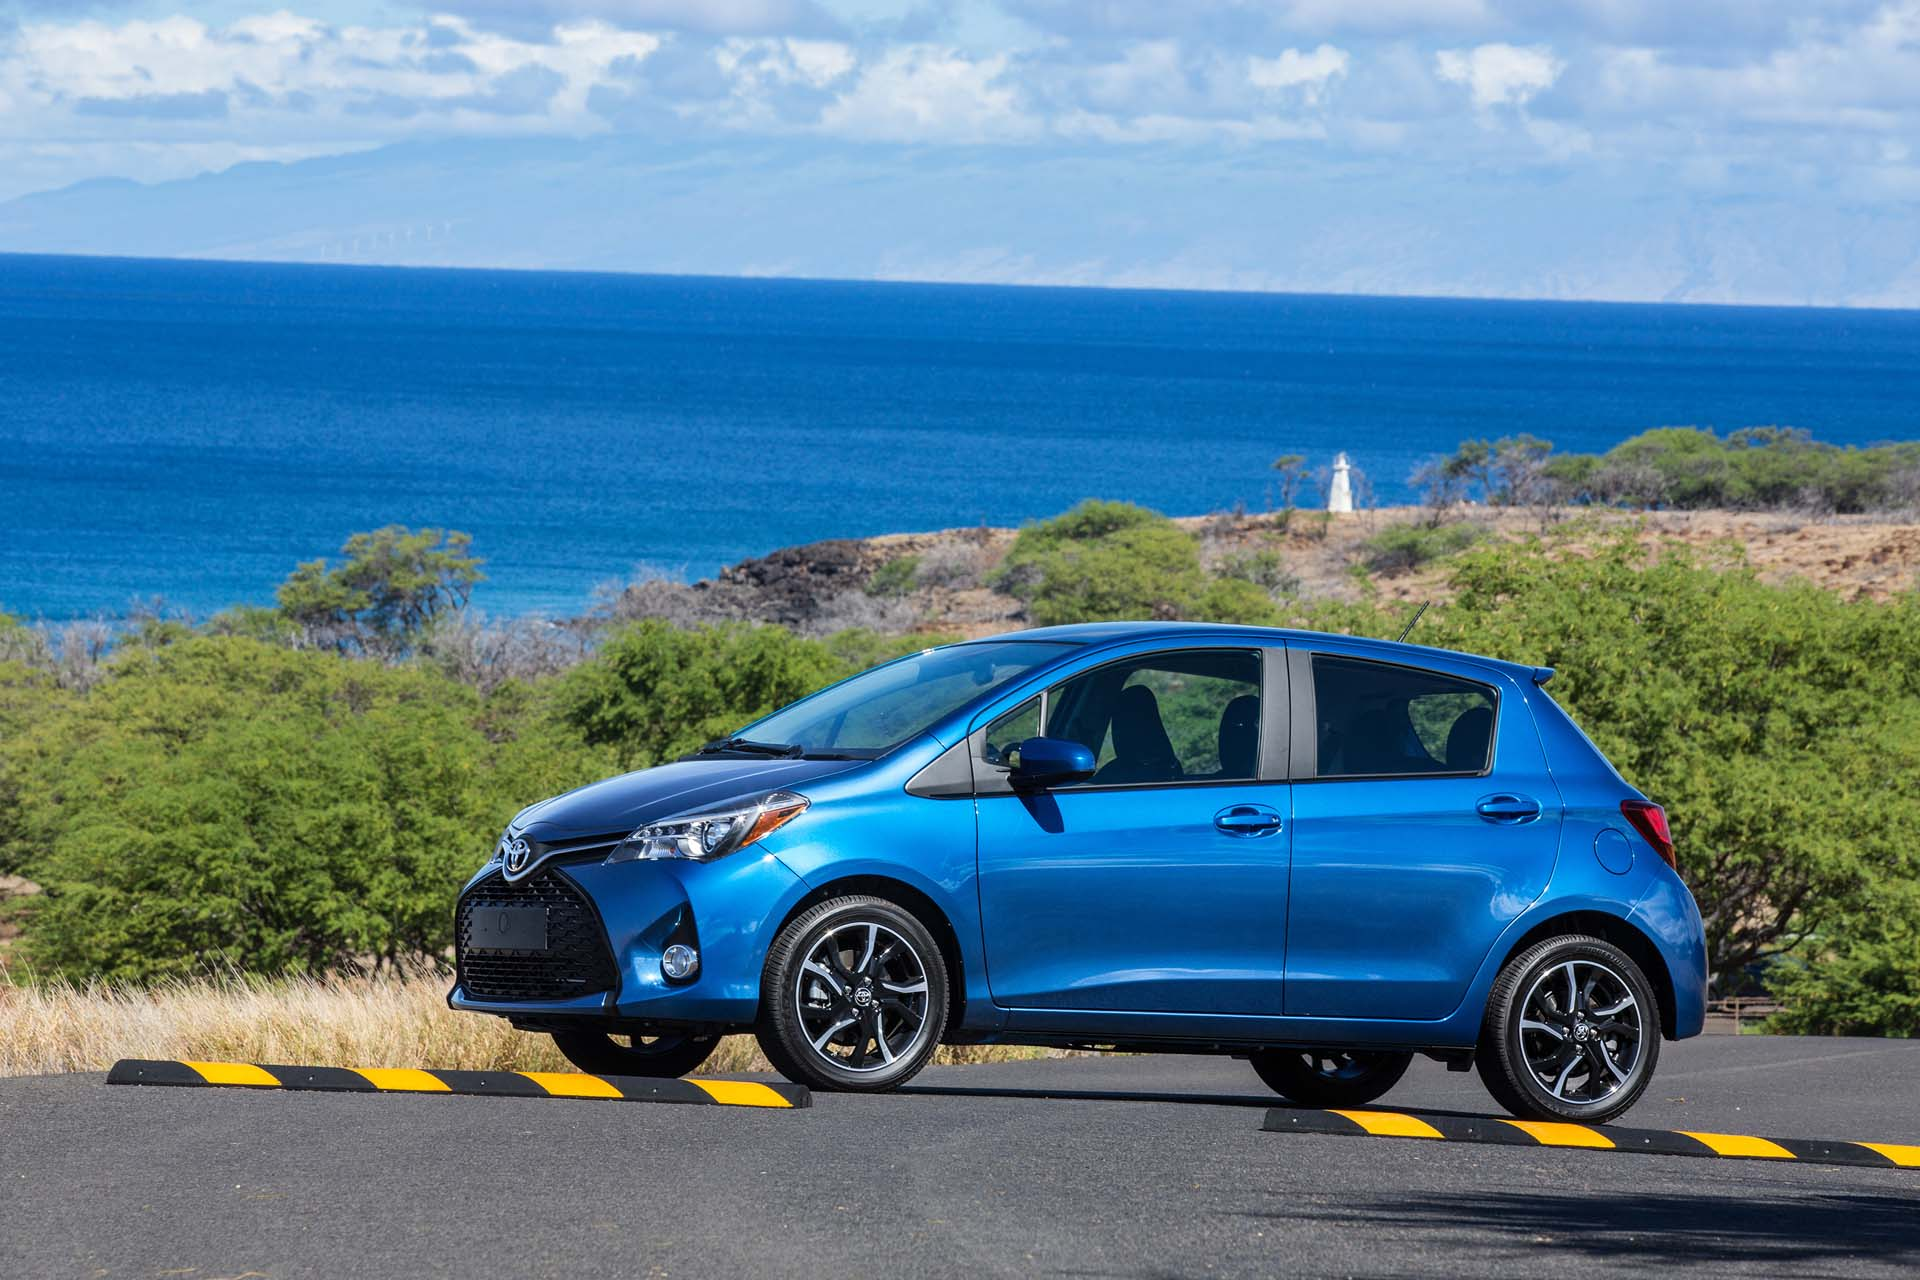 Yaris 2017 Review >> 2017 Toyota Yaris Features Review - The Car Connection